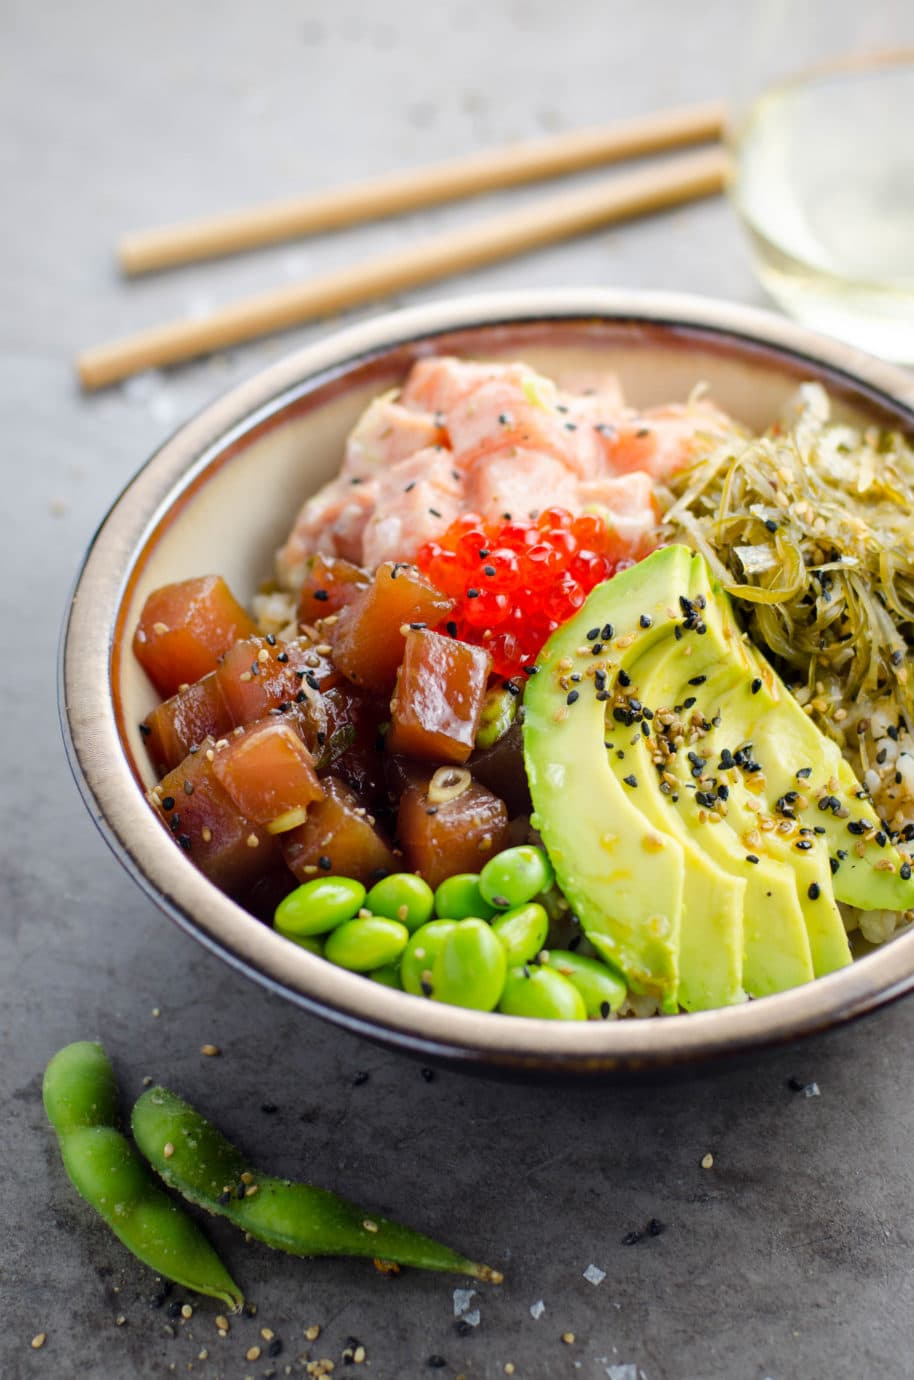 Spicy Tuna Bowl Whole Foods